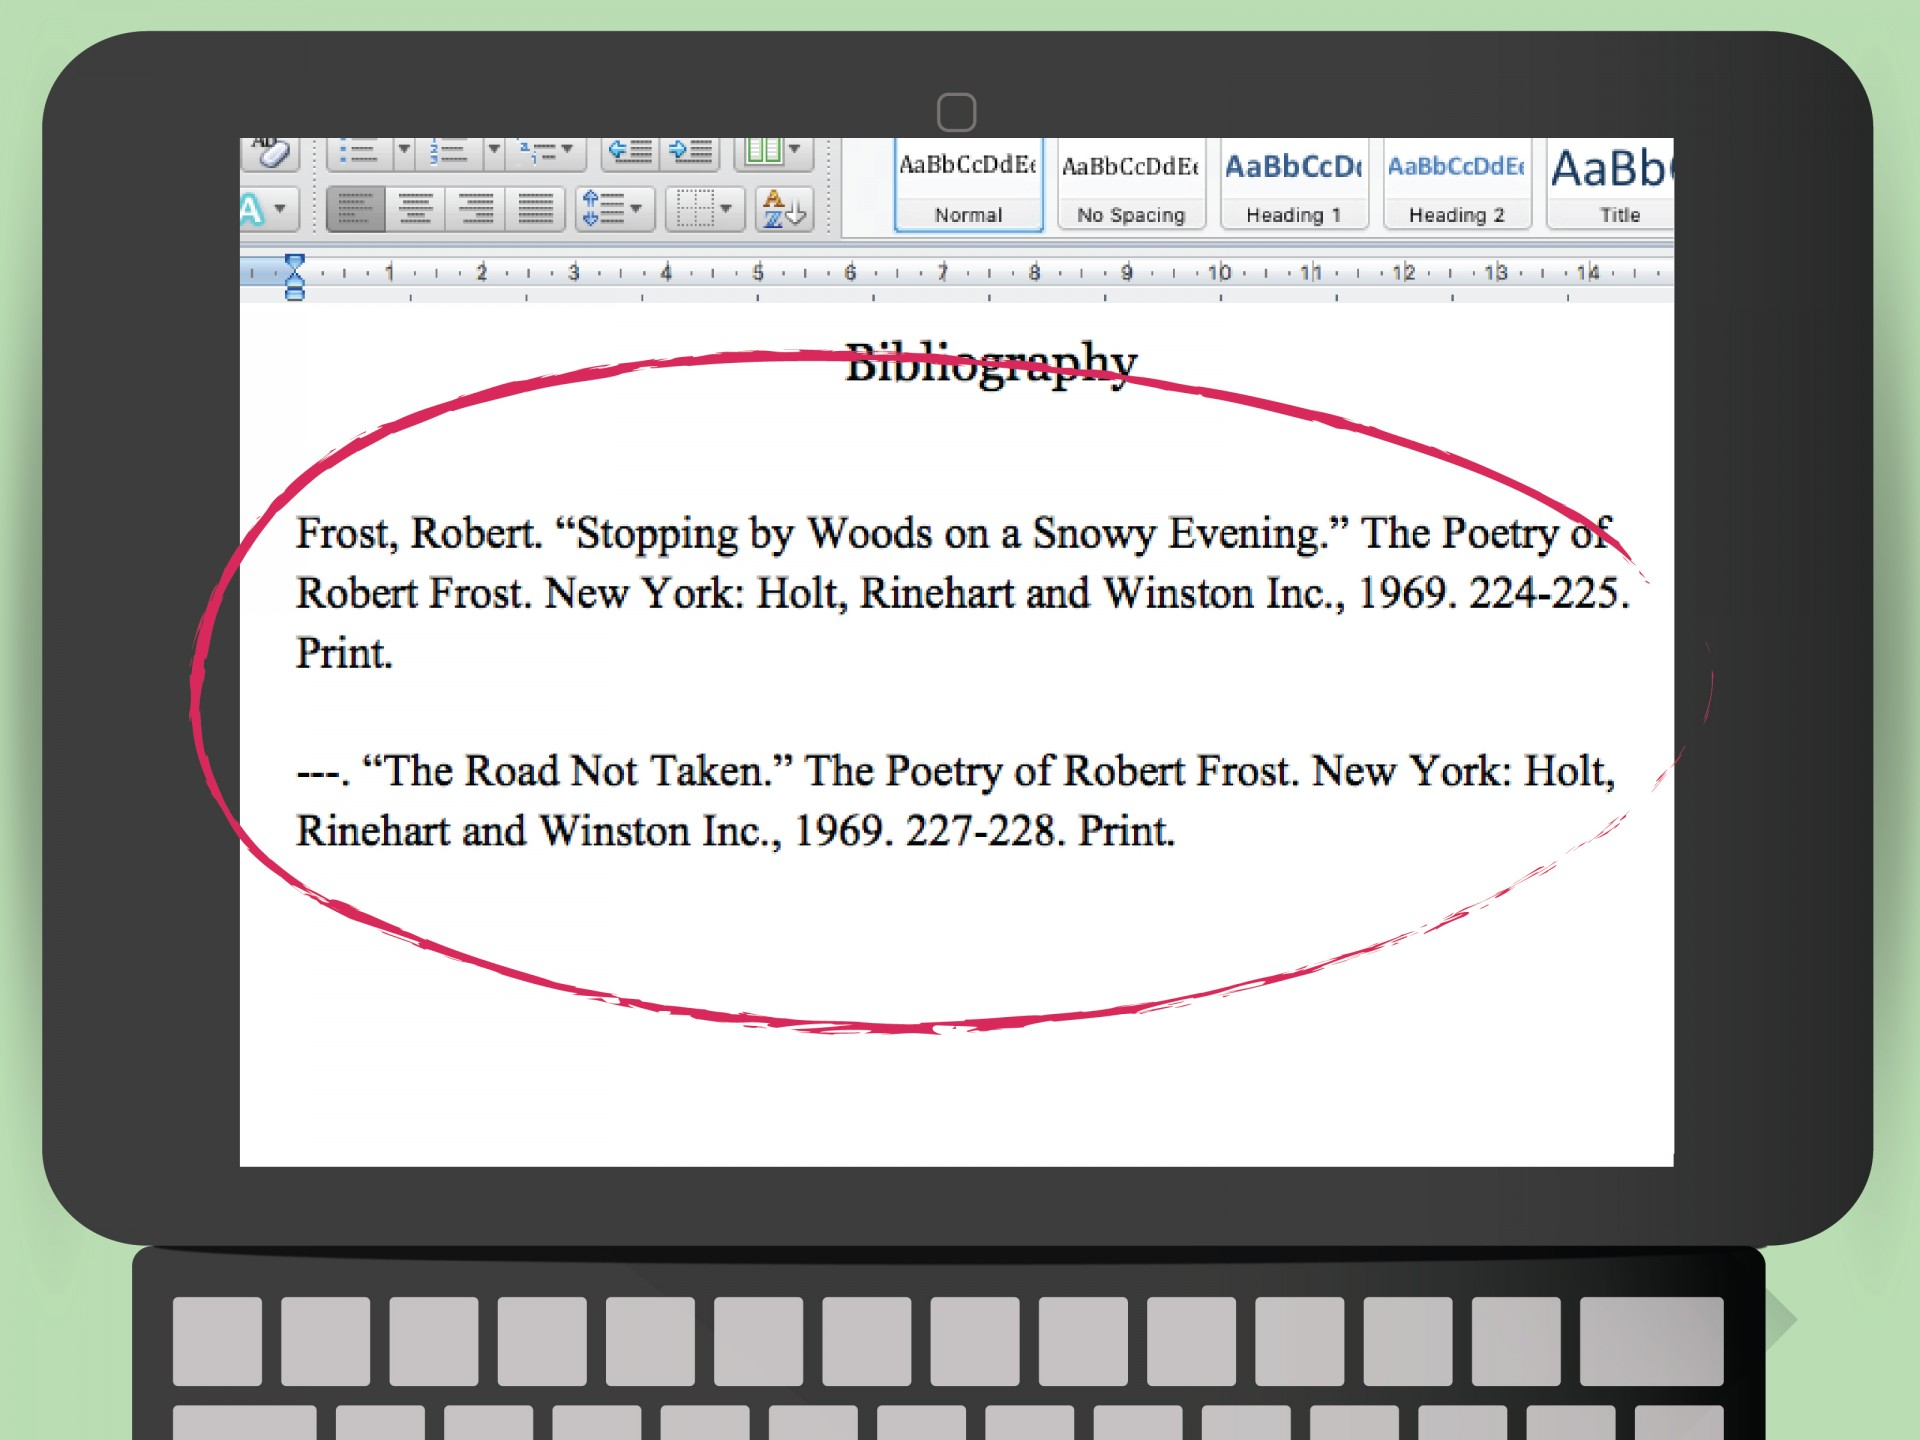 011 Quote And Cite Poem In An Essay Using Mla Format Step Version Example How Phenomenal To From A Website Put Long Harvard 1920